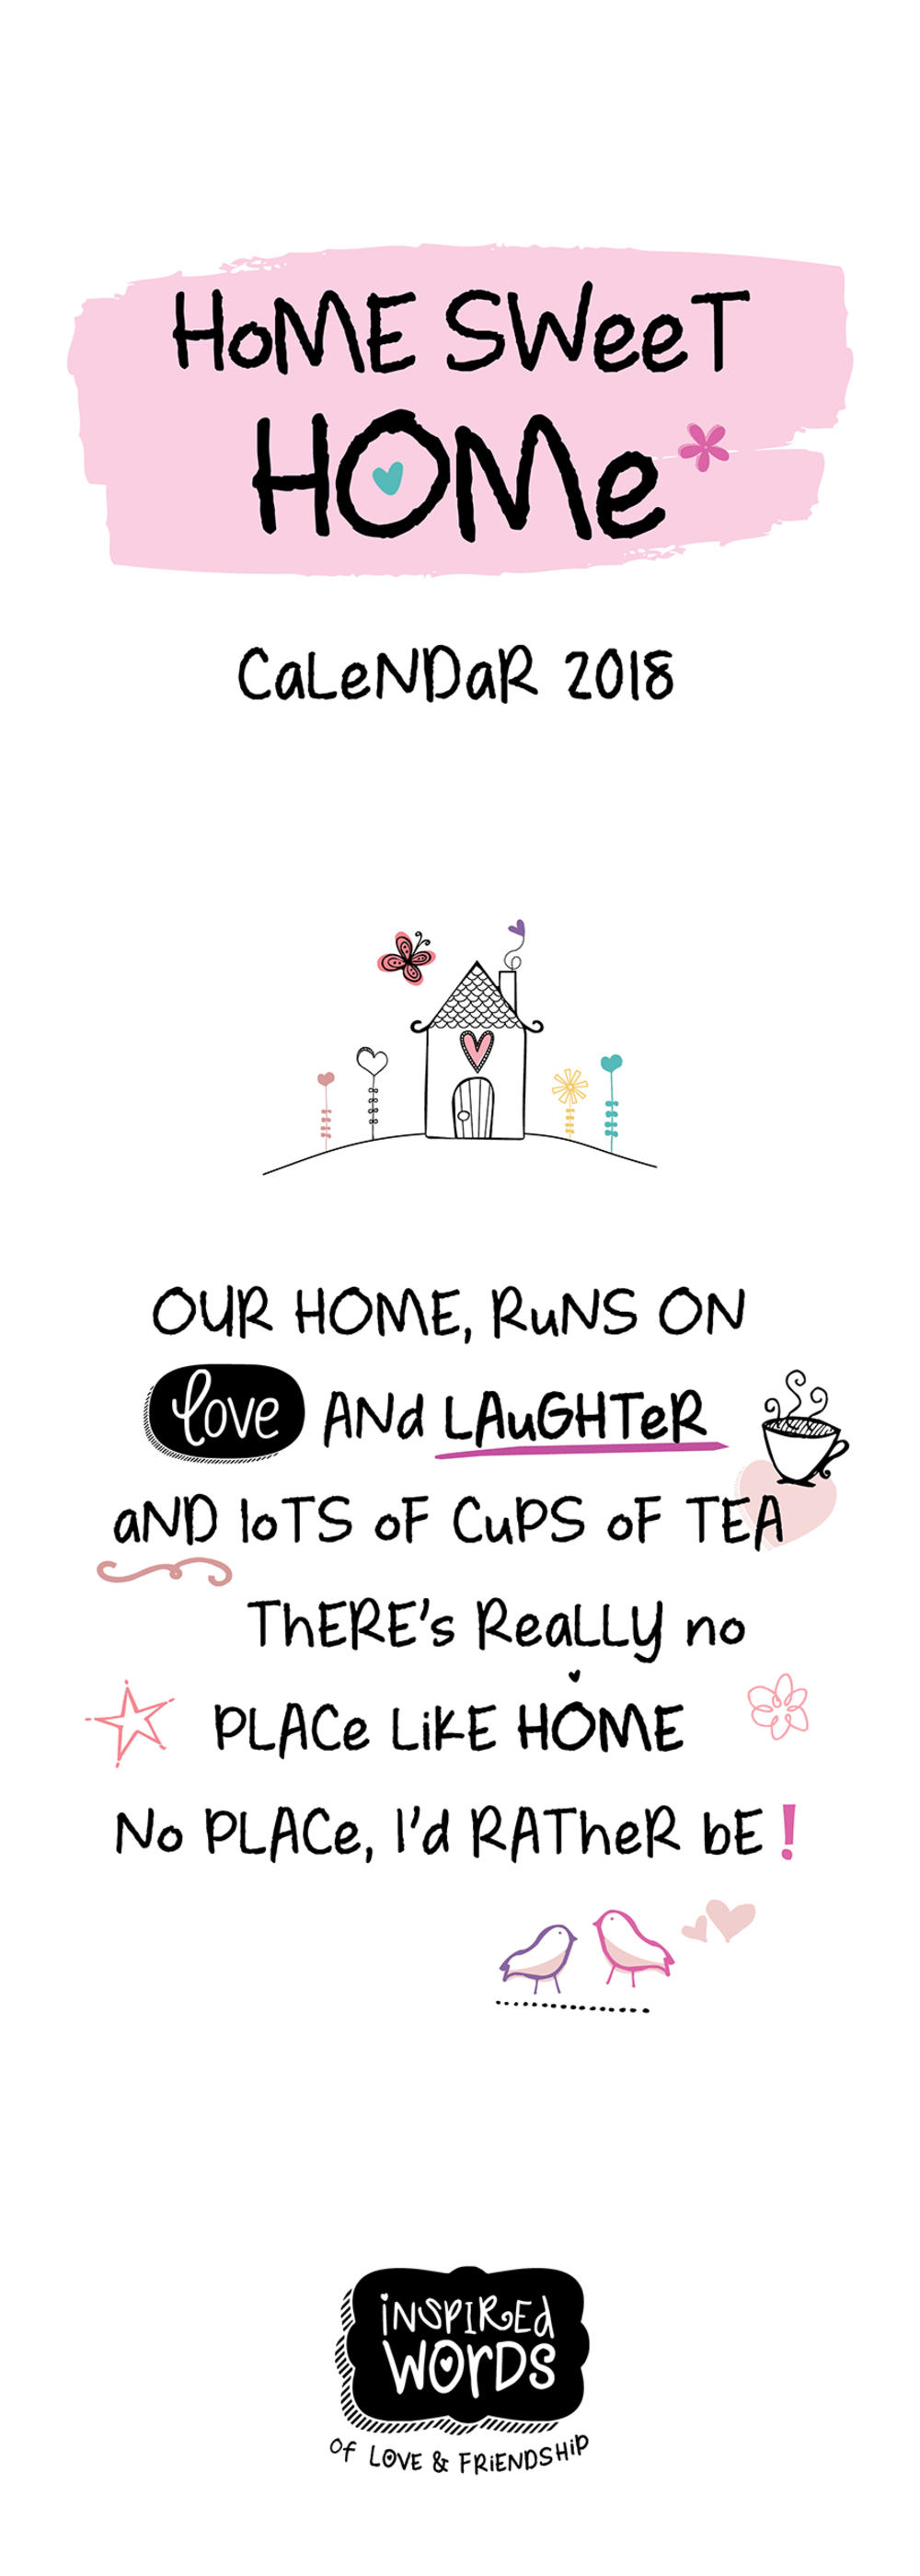 2018 Inspired Words Home Sweet Home Calendar